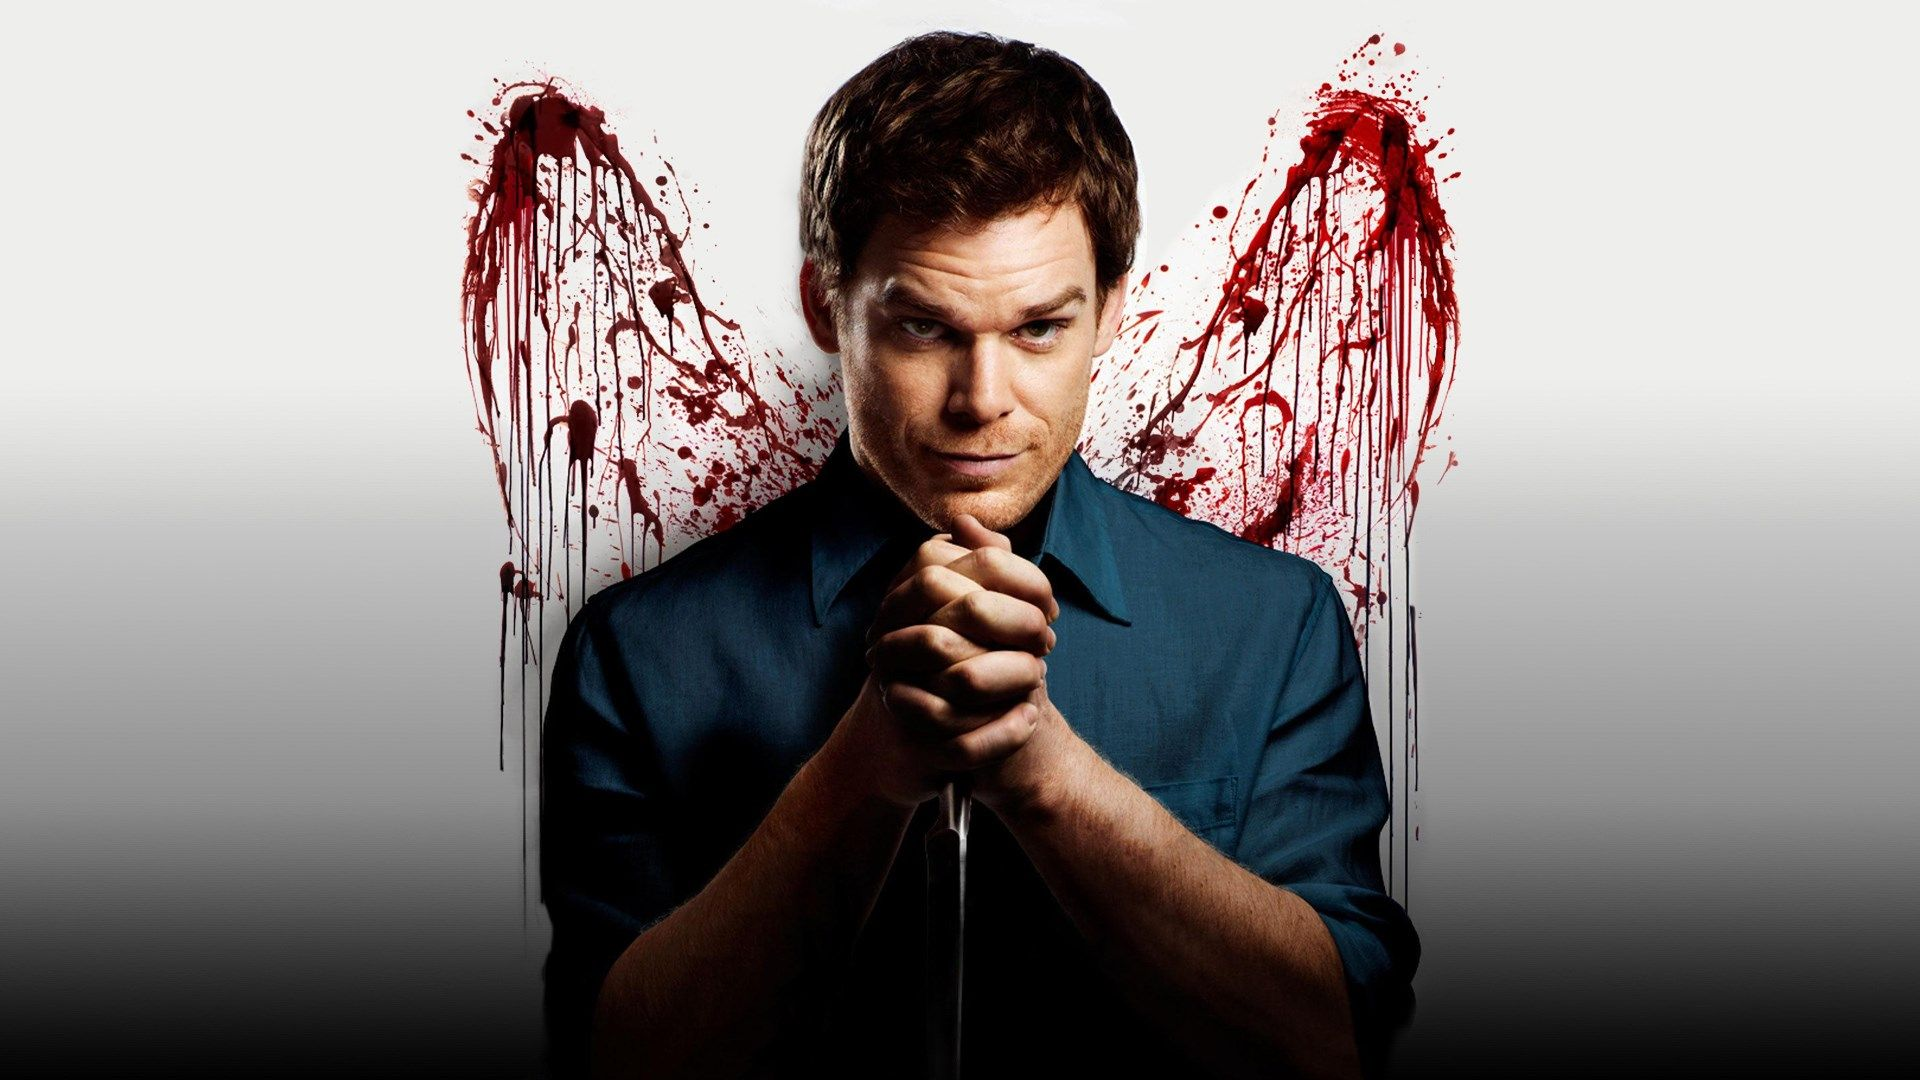 Dexter Desktop Nexus Wallpaper Dexter Wallpaper Dexter Dexter Seasons